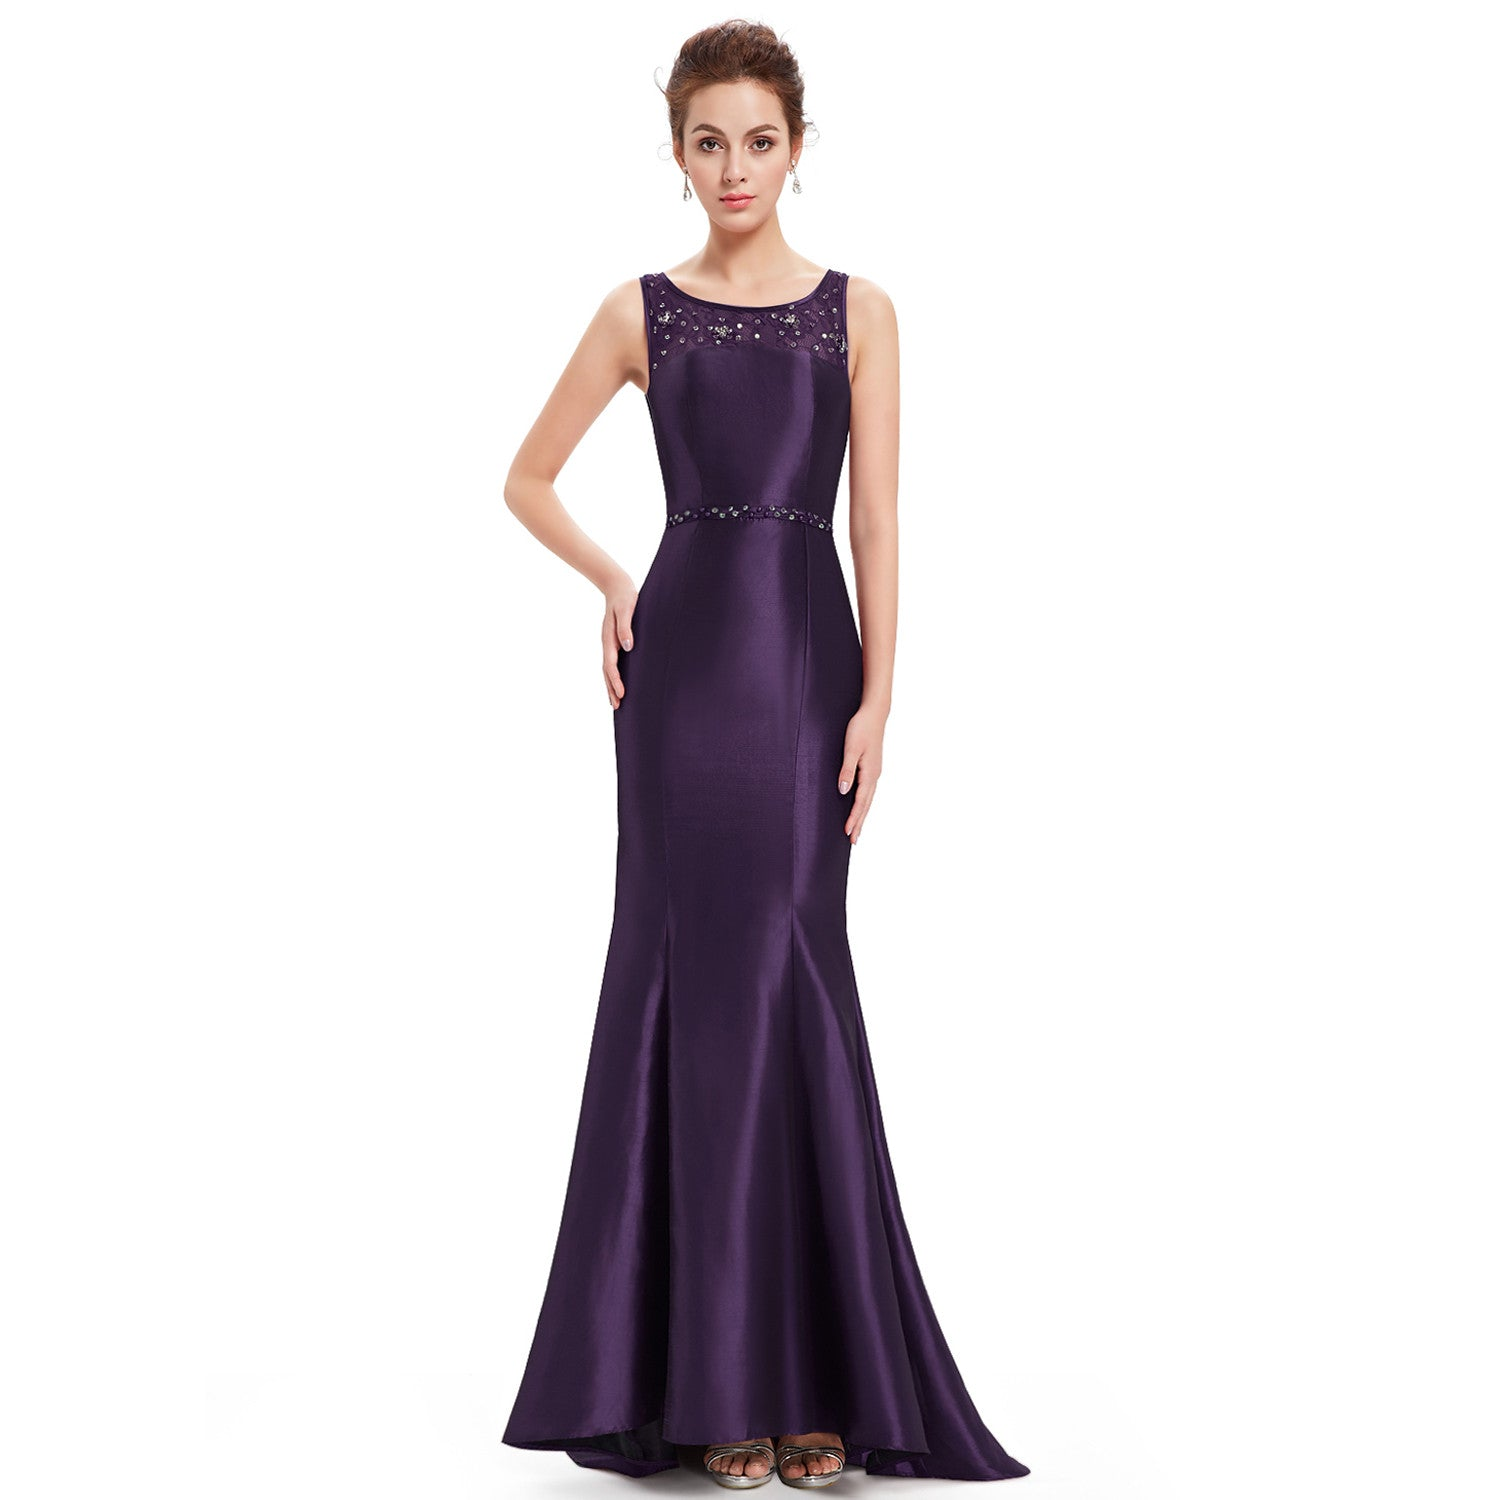 Rhinestone Sleeveless Fishtail Evening Dress - Multiple Color Options